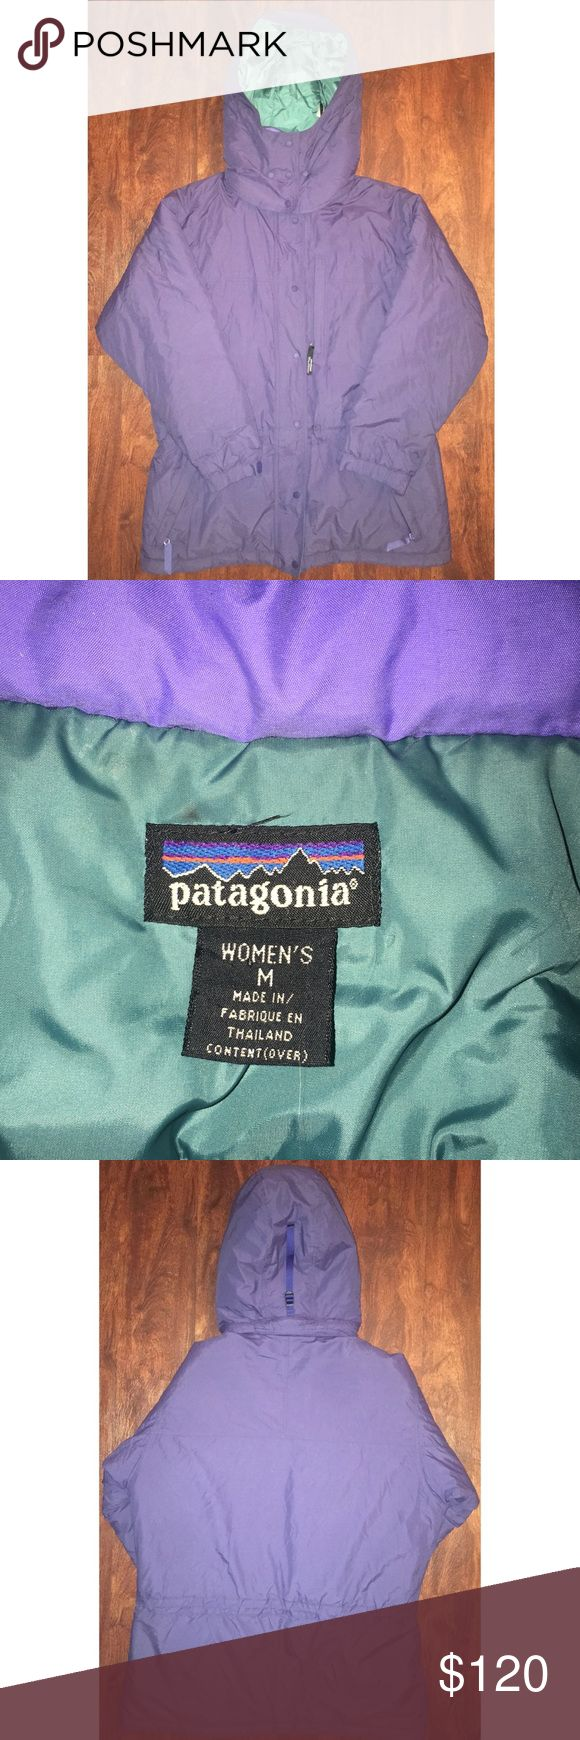 PATAGONIA PARKA Purple Sz M Very well kept coat in excellent condition. Extremely warm, inside is made of Nylon. Patagonia Jackets & Coats